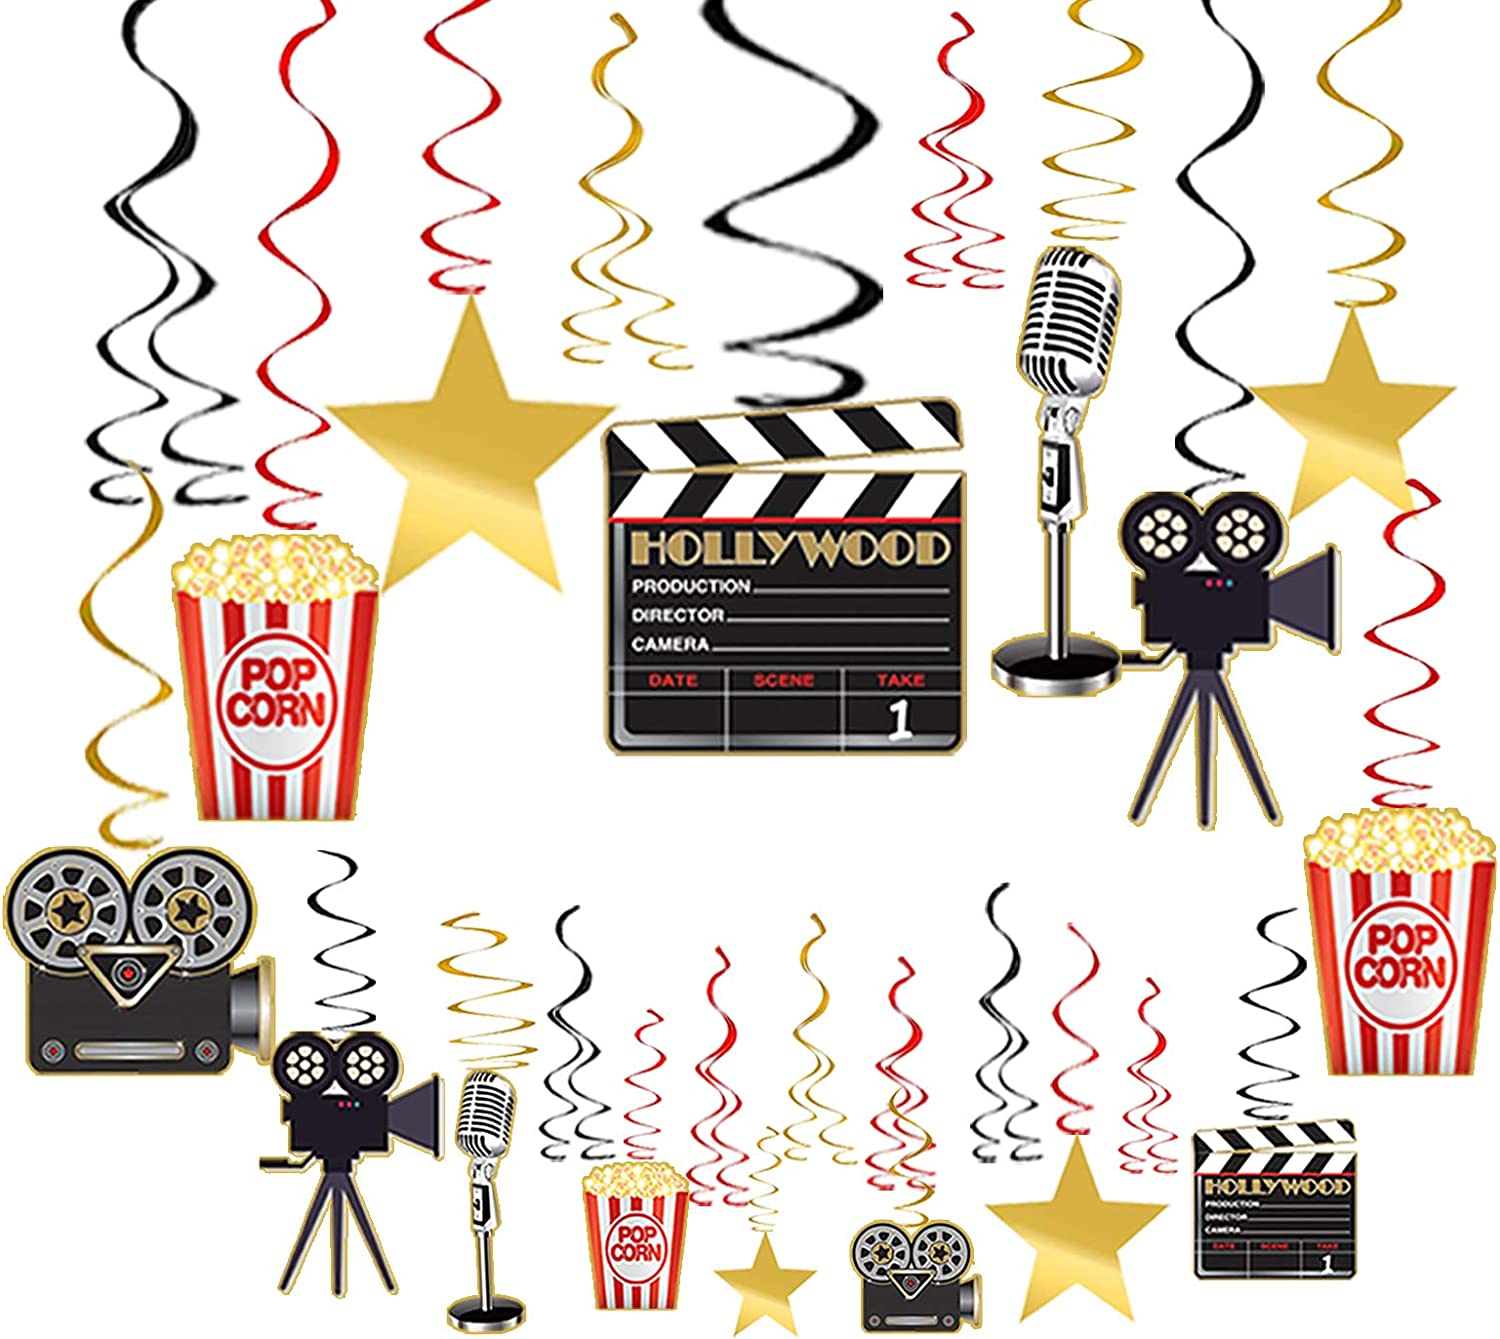 Movie Night Decorations Hanging Swirls Hollywood Movie Theme Party Decorations Supplies 30pcs